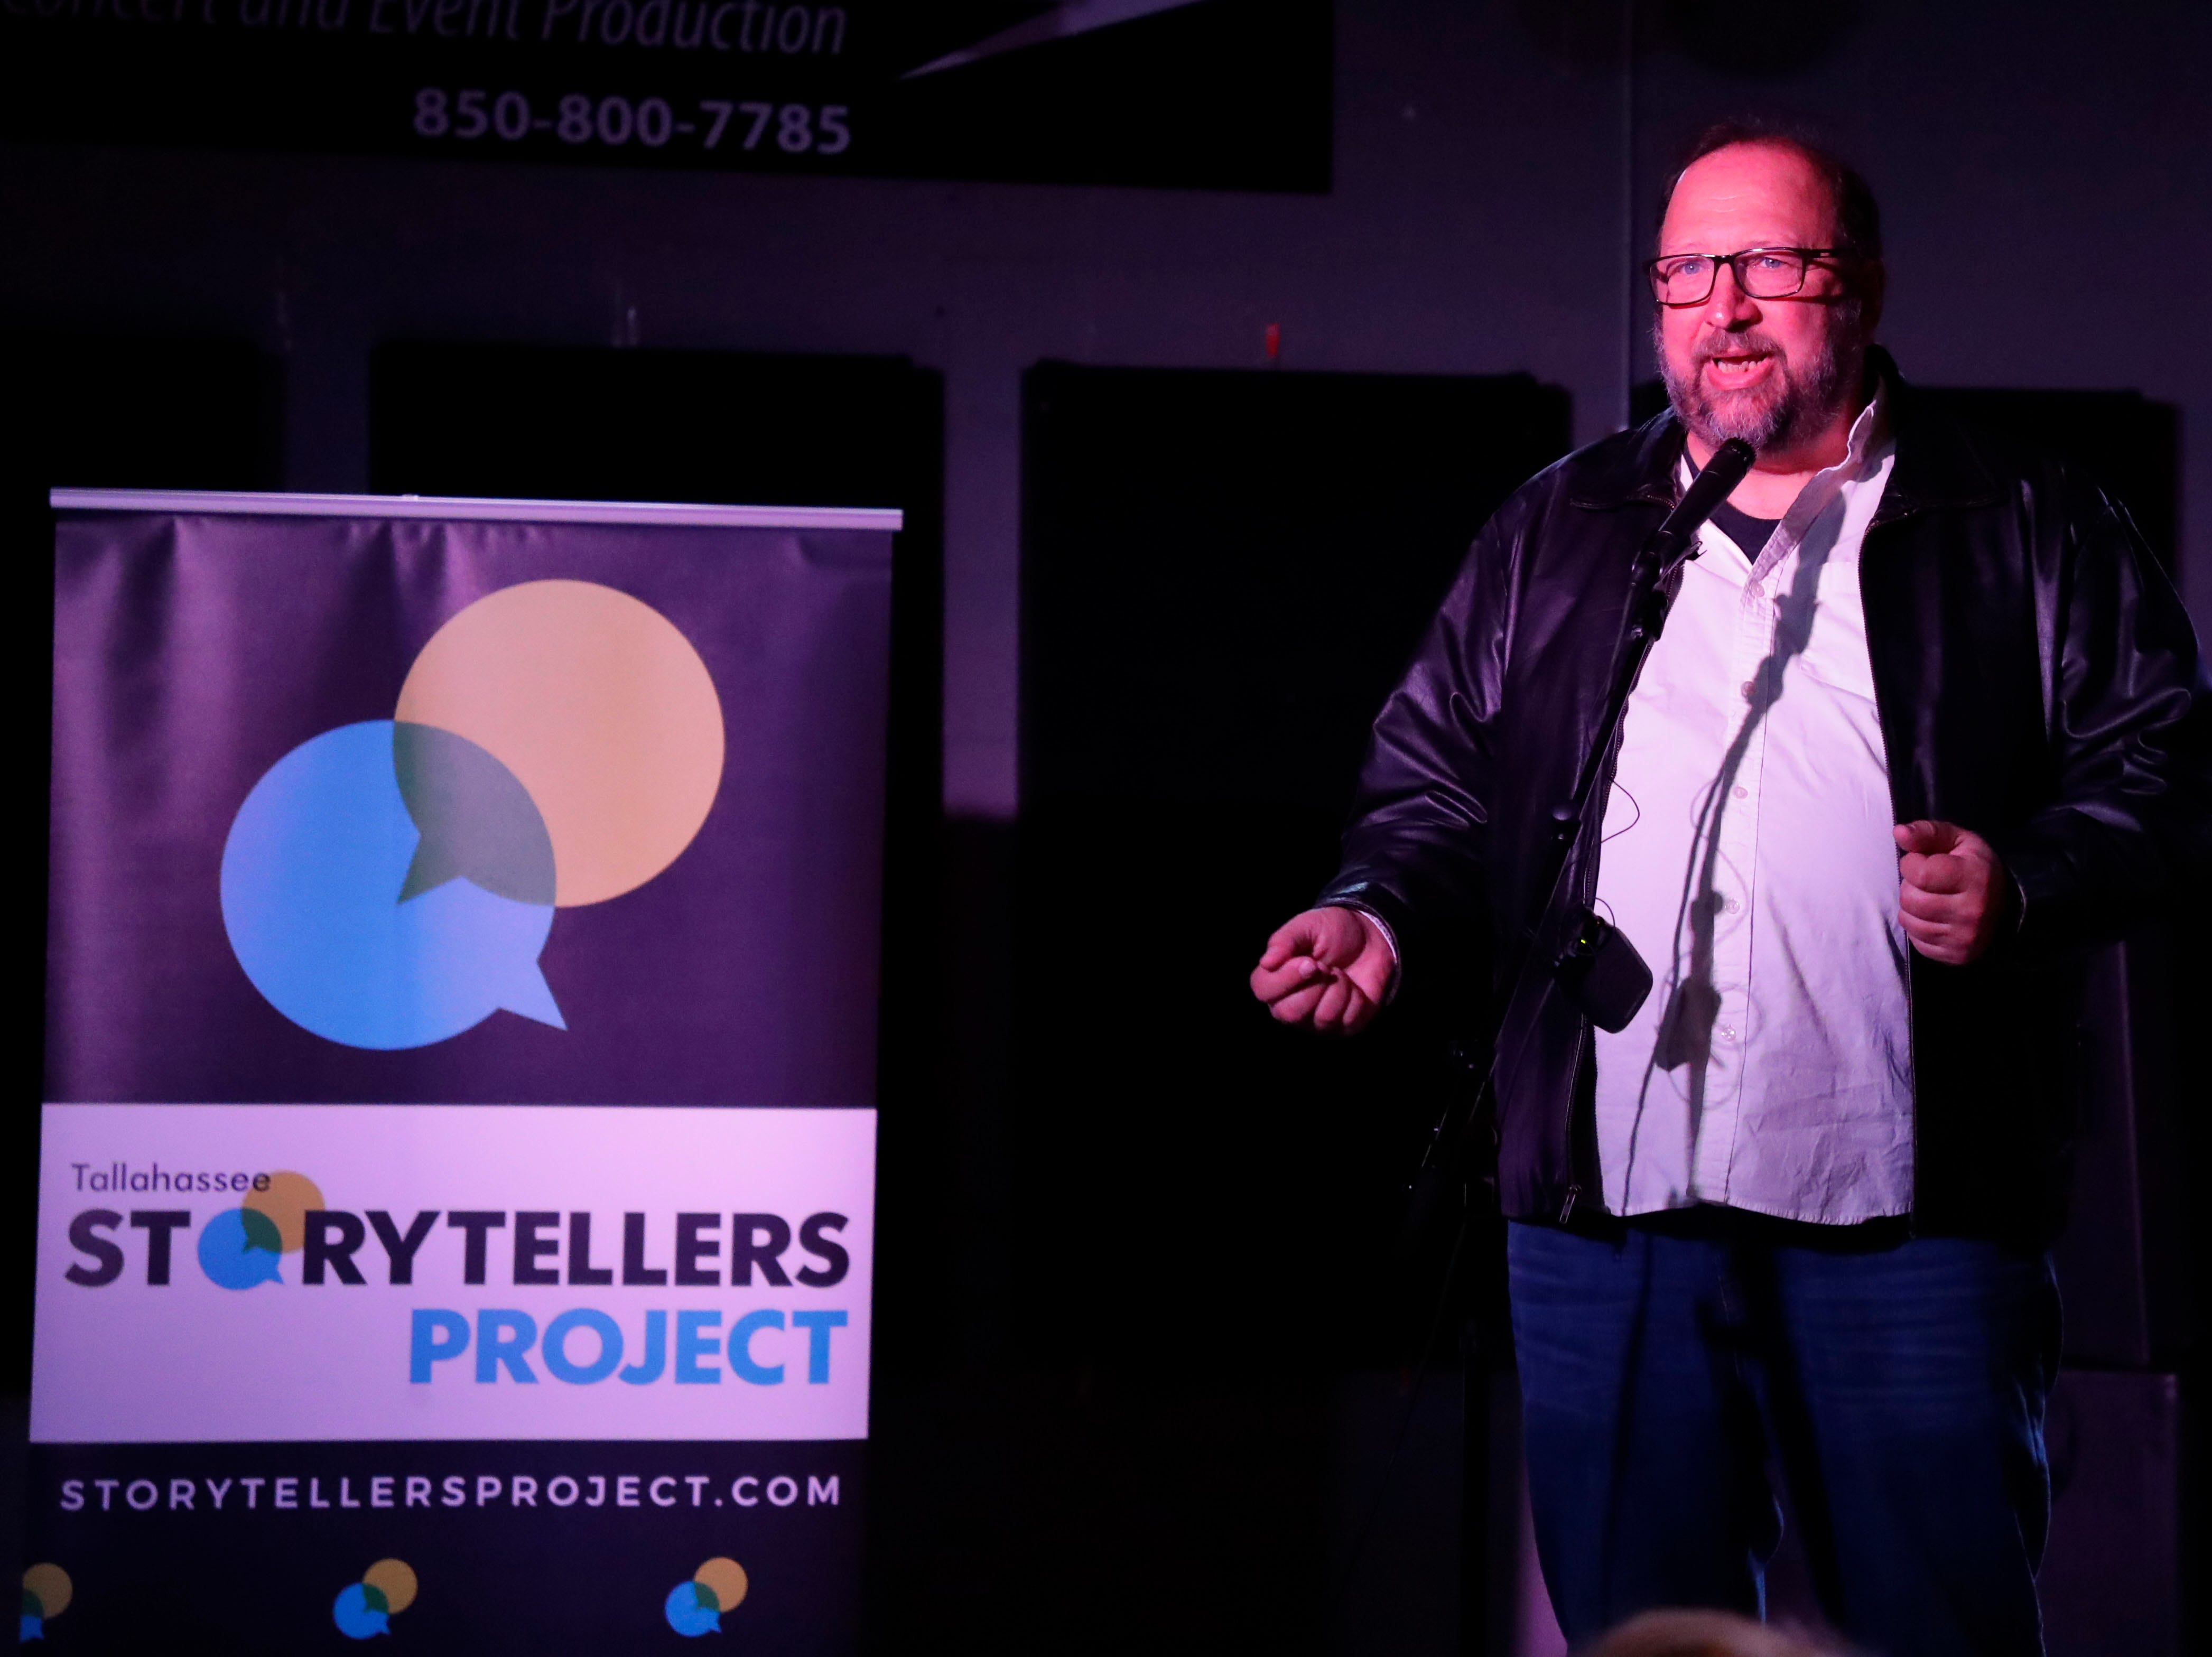 Jeff Schweers, investigative reporter for the Tallahassee Democrat, spoke about an experience he had with an ex-girlfriend and social media at Story Tellers, Tuesday Feb. 12, 2019.